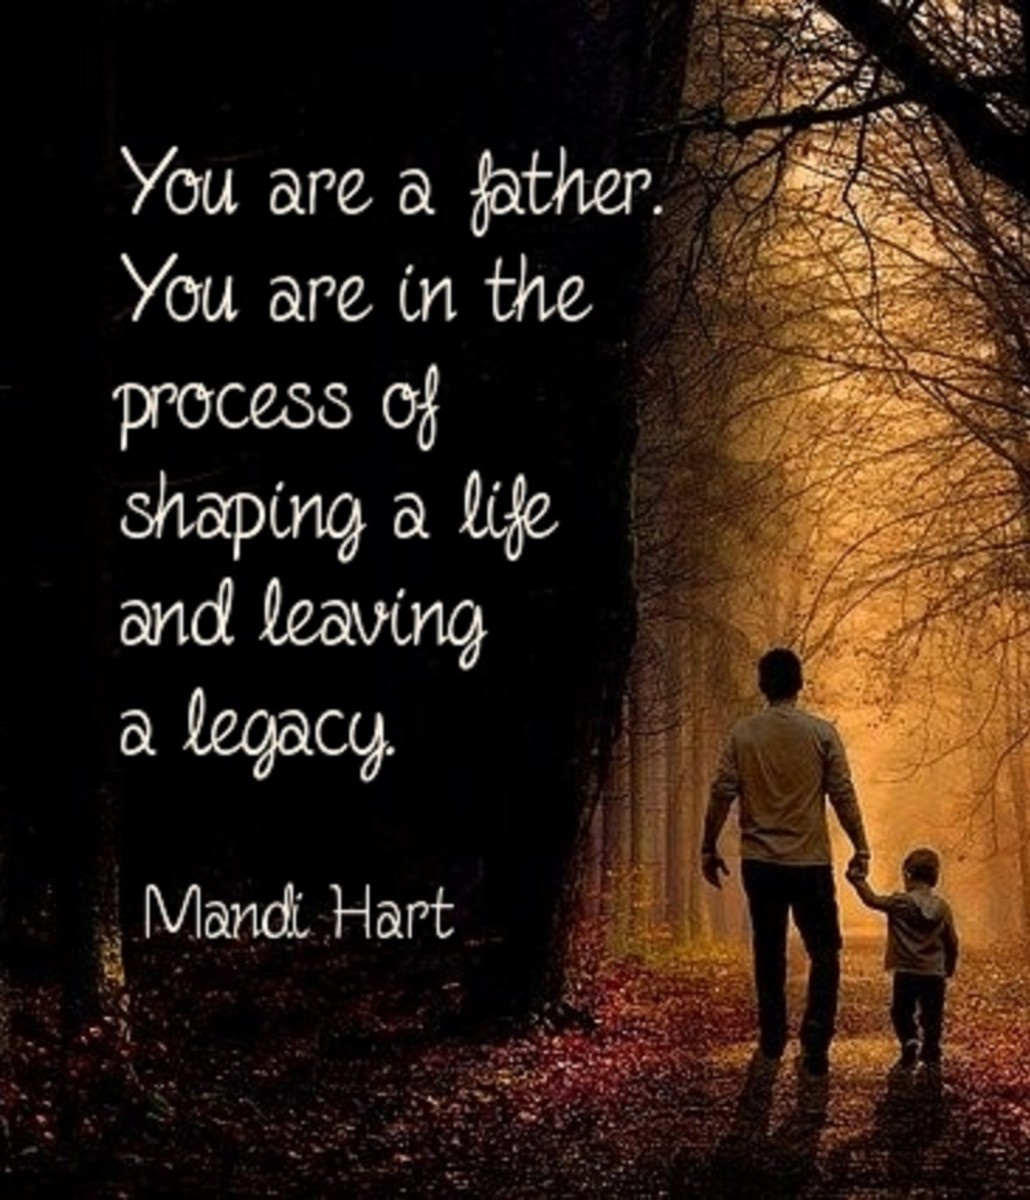 You are a father. You are in the process of shaping a life and leaving a legacy.